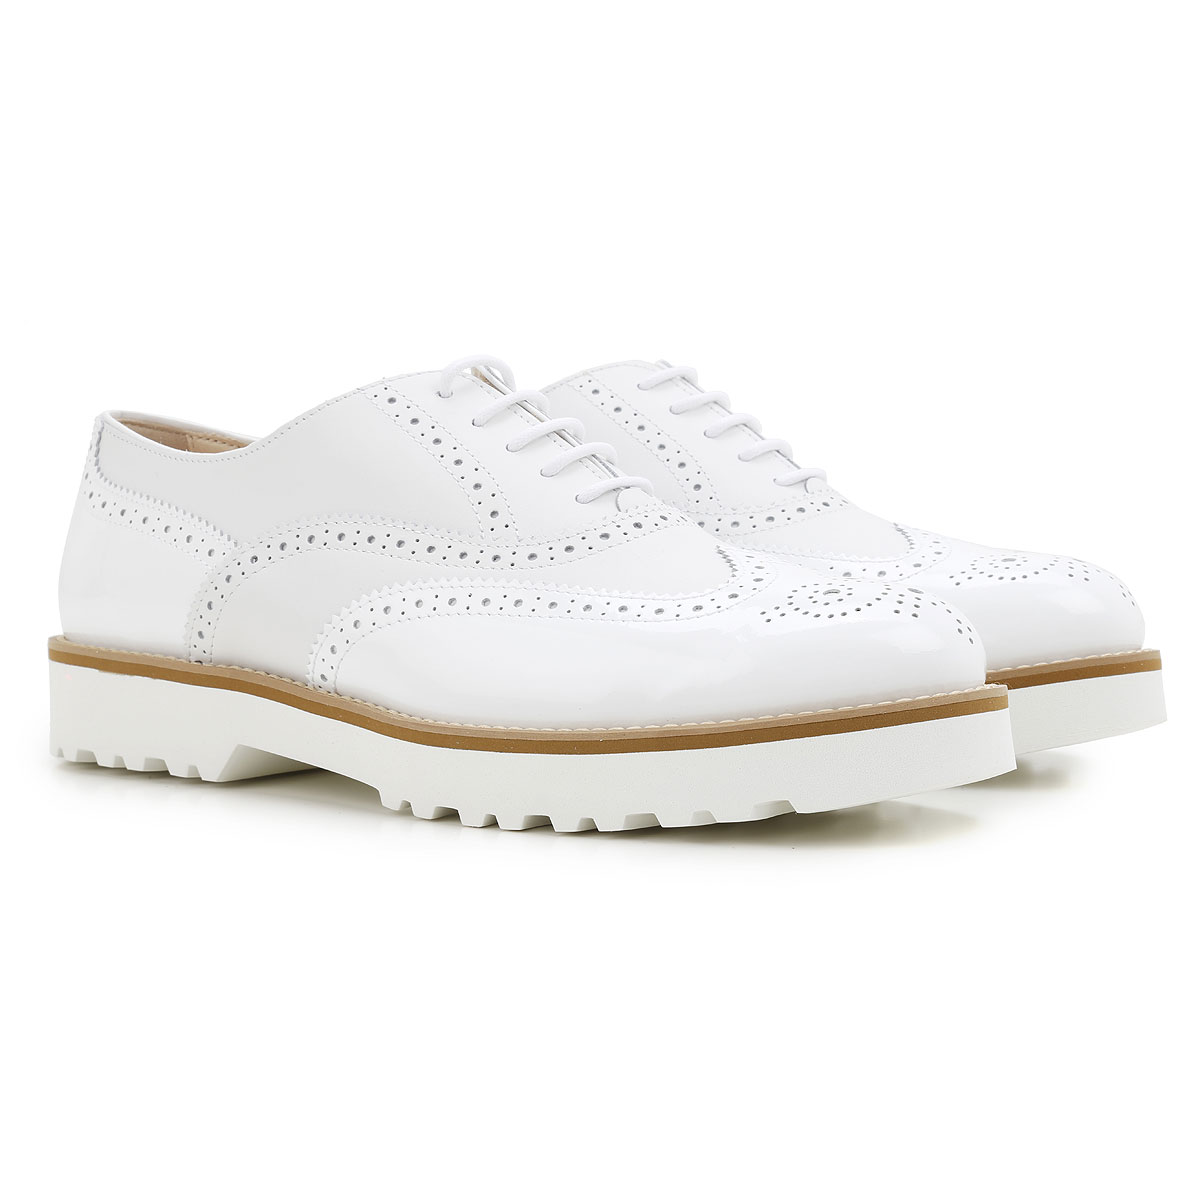 Hogan Brogues Oxford Shoes On Sale in Outlet, White, Leather, 2019, 5 6.5